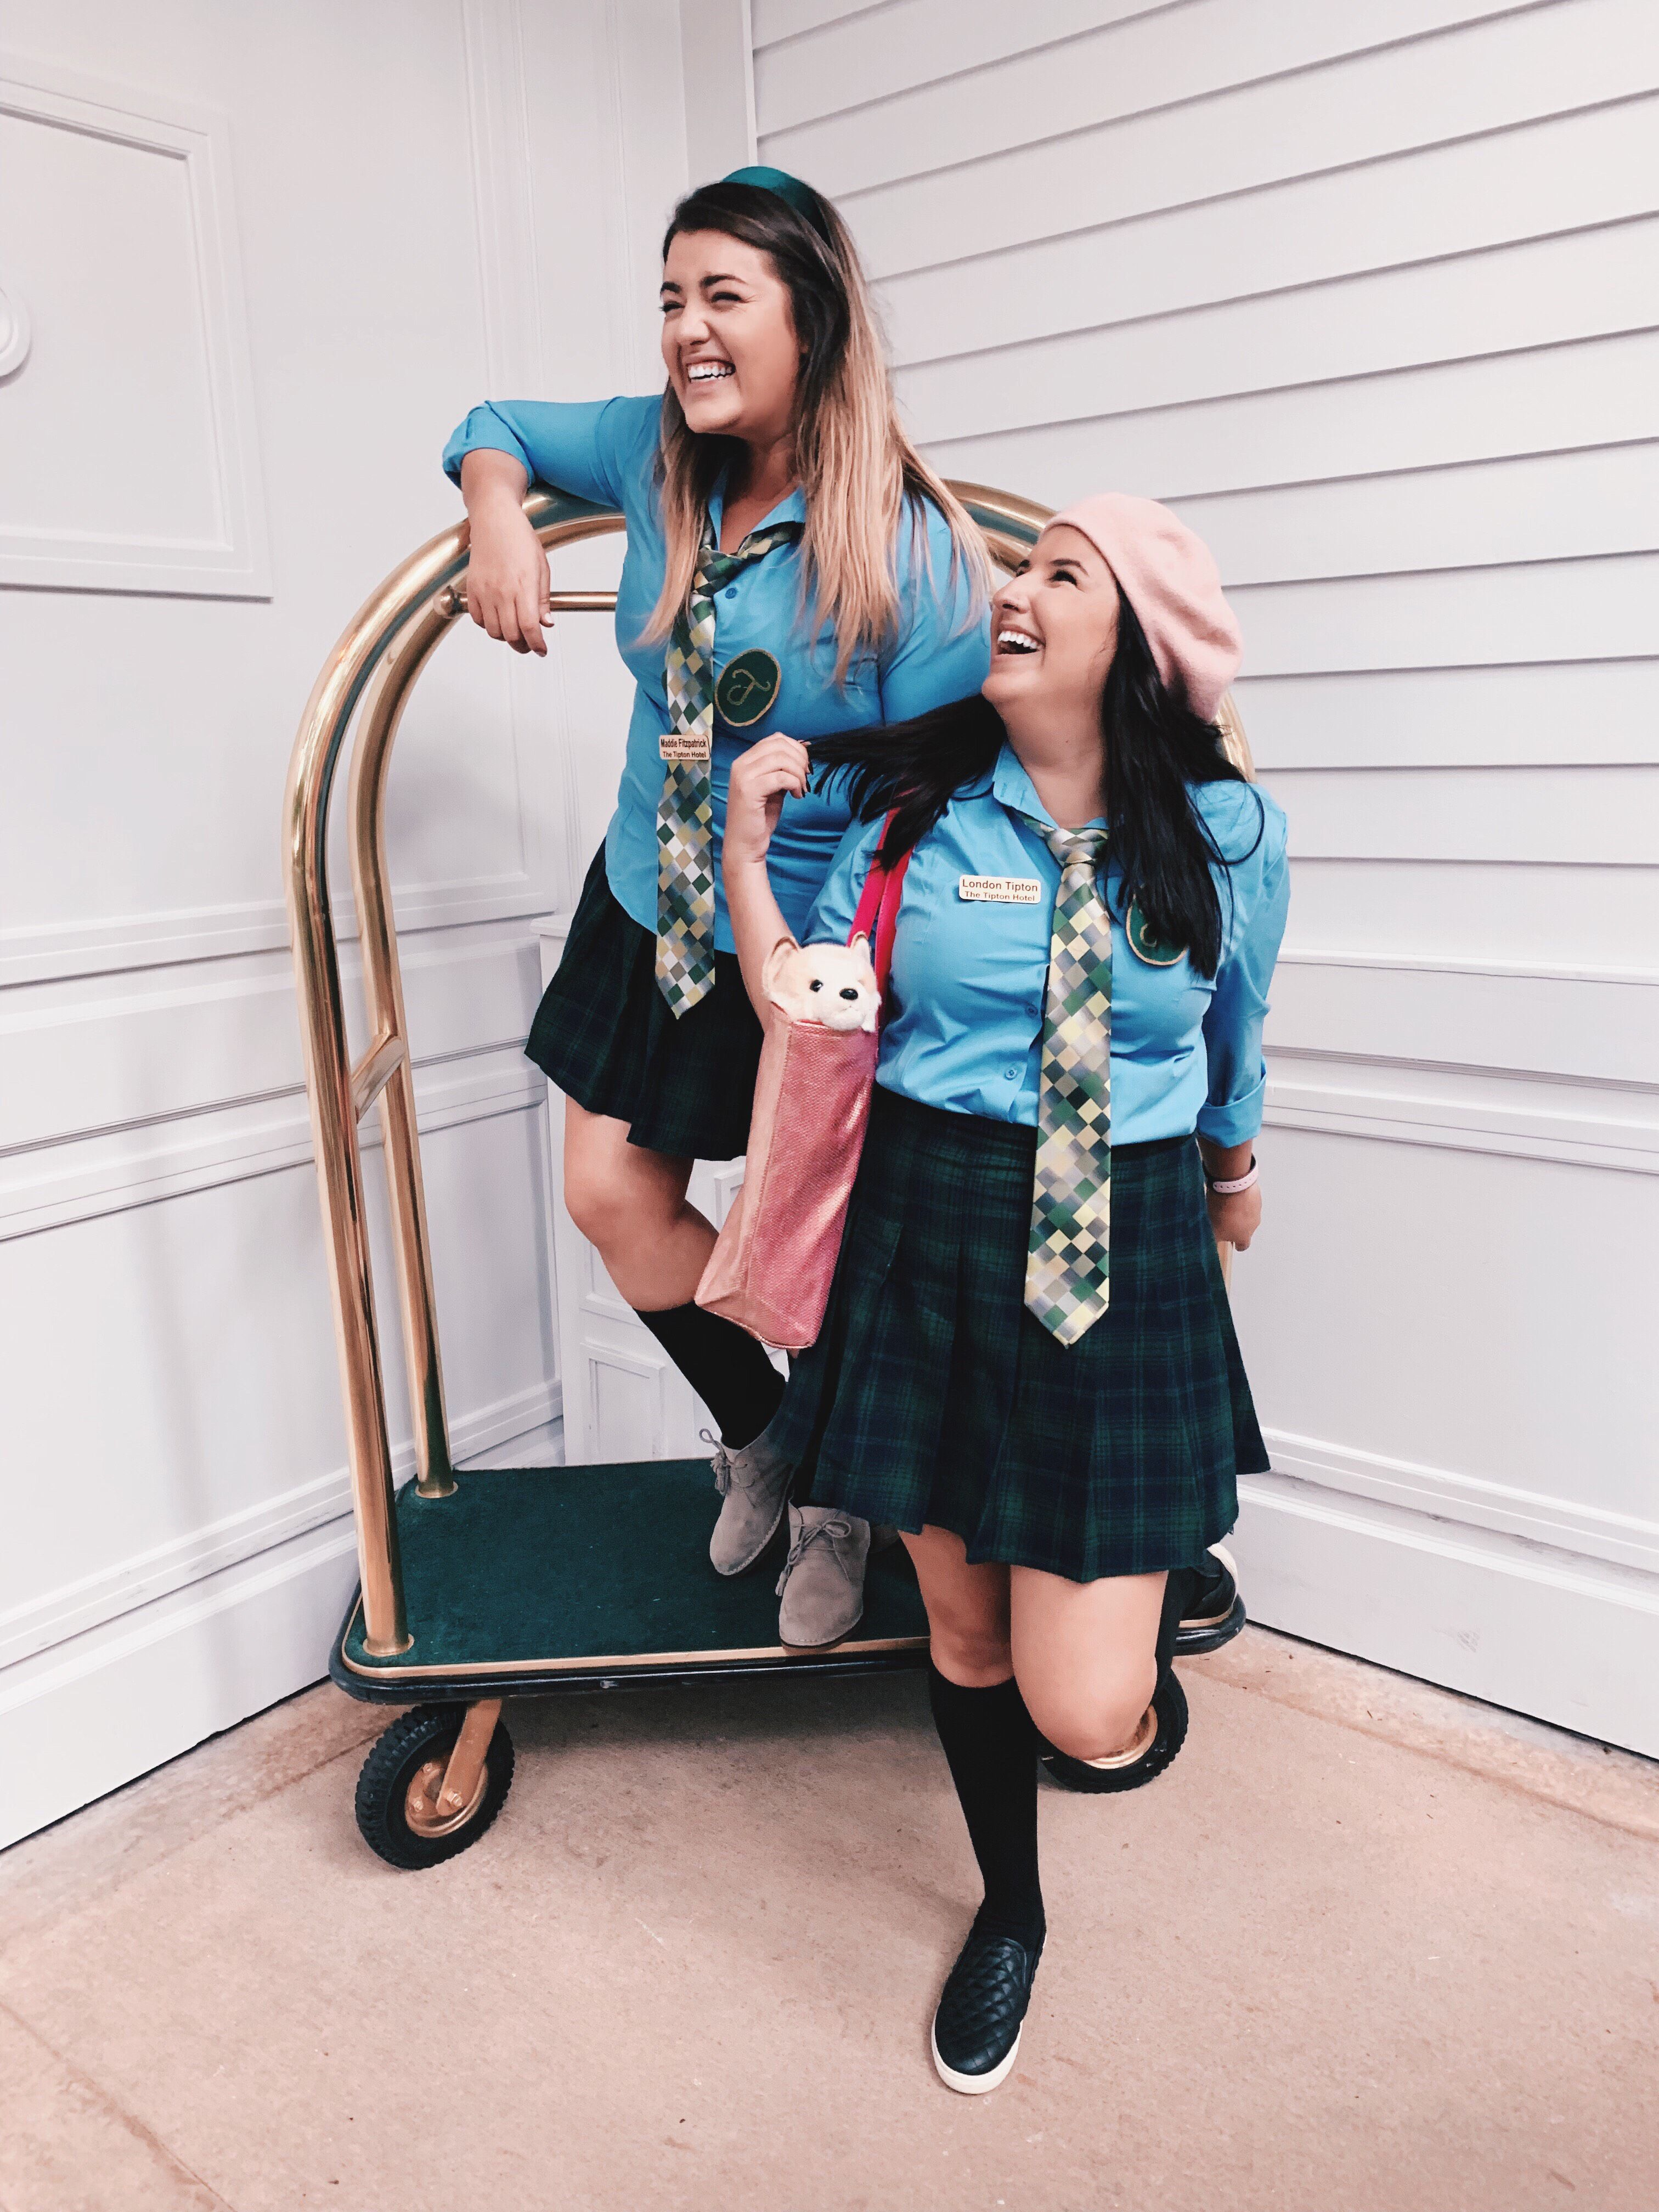 London \u0026 Maddie from The Suite Life of Zack \u0026 Cody in 2019